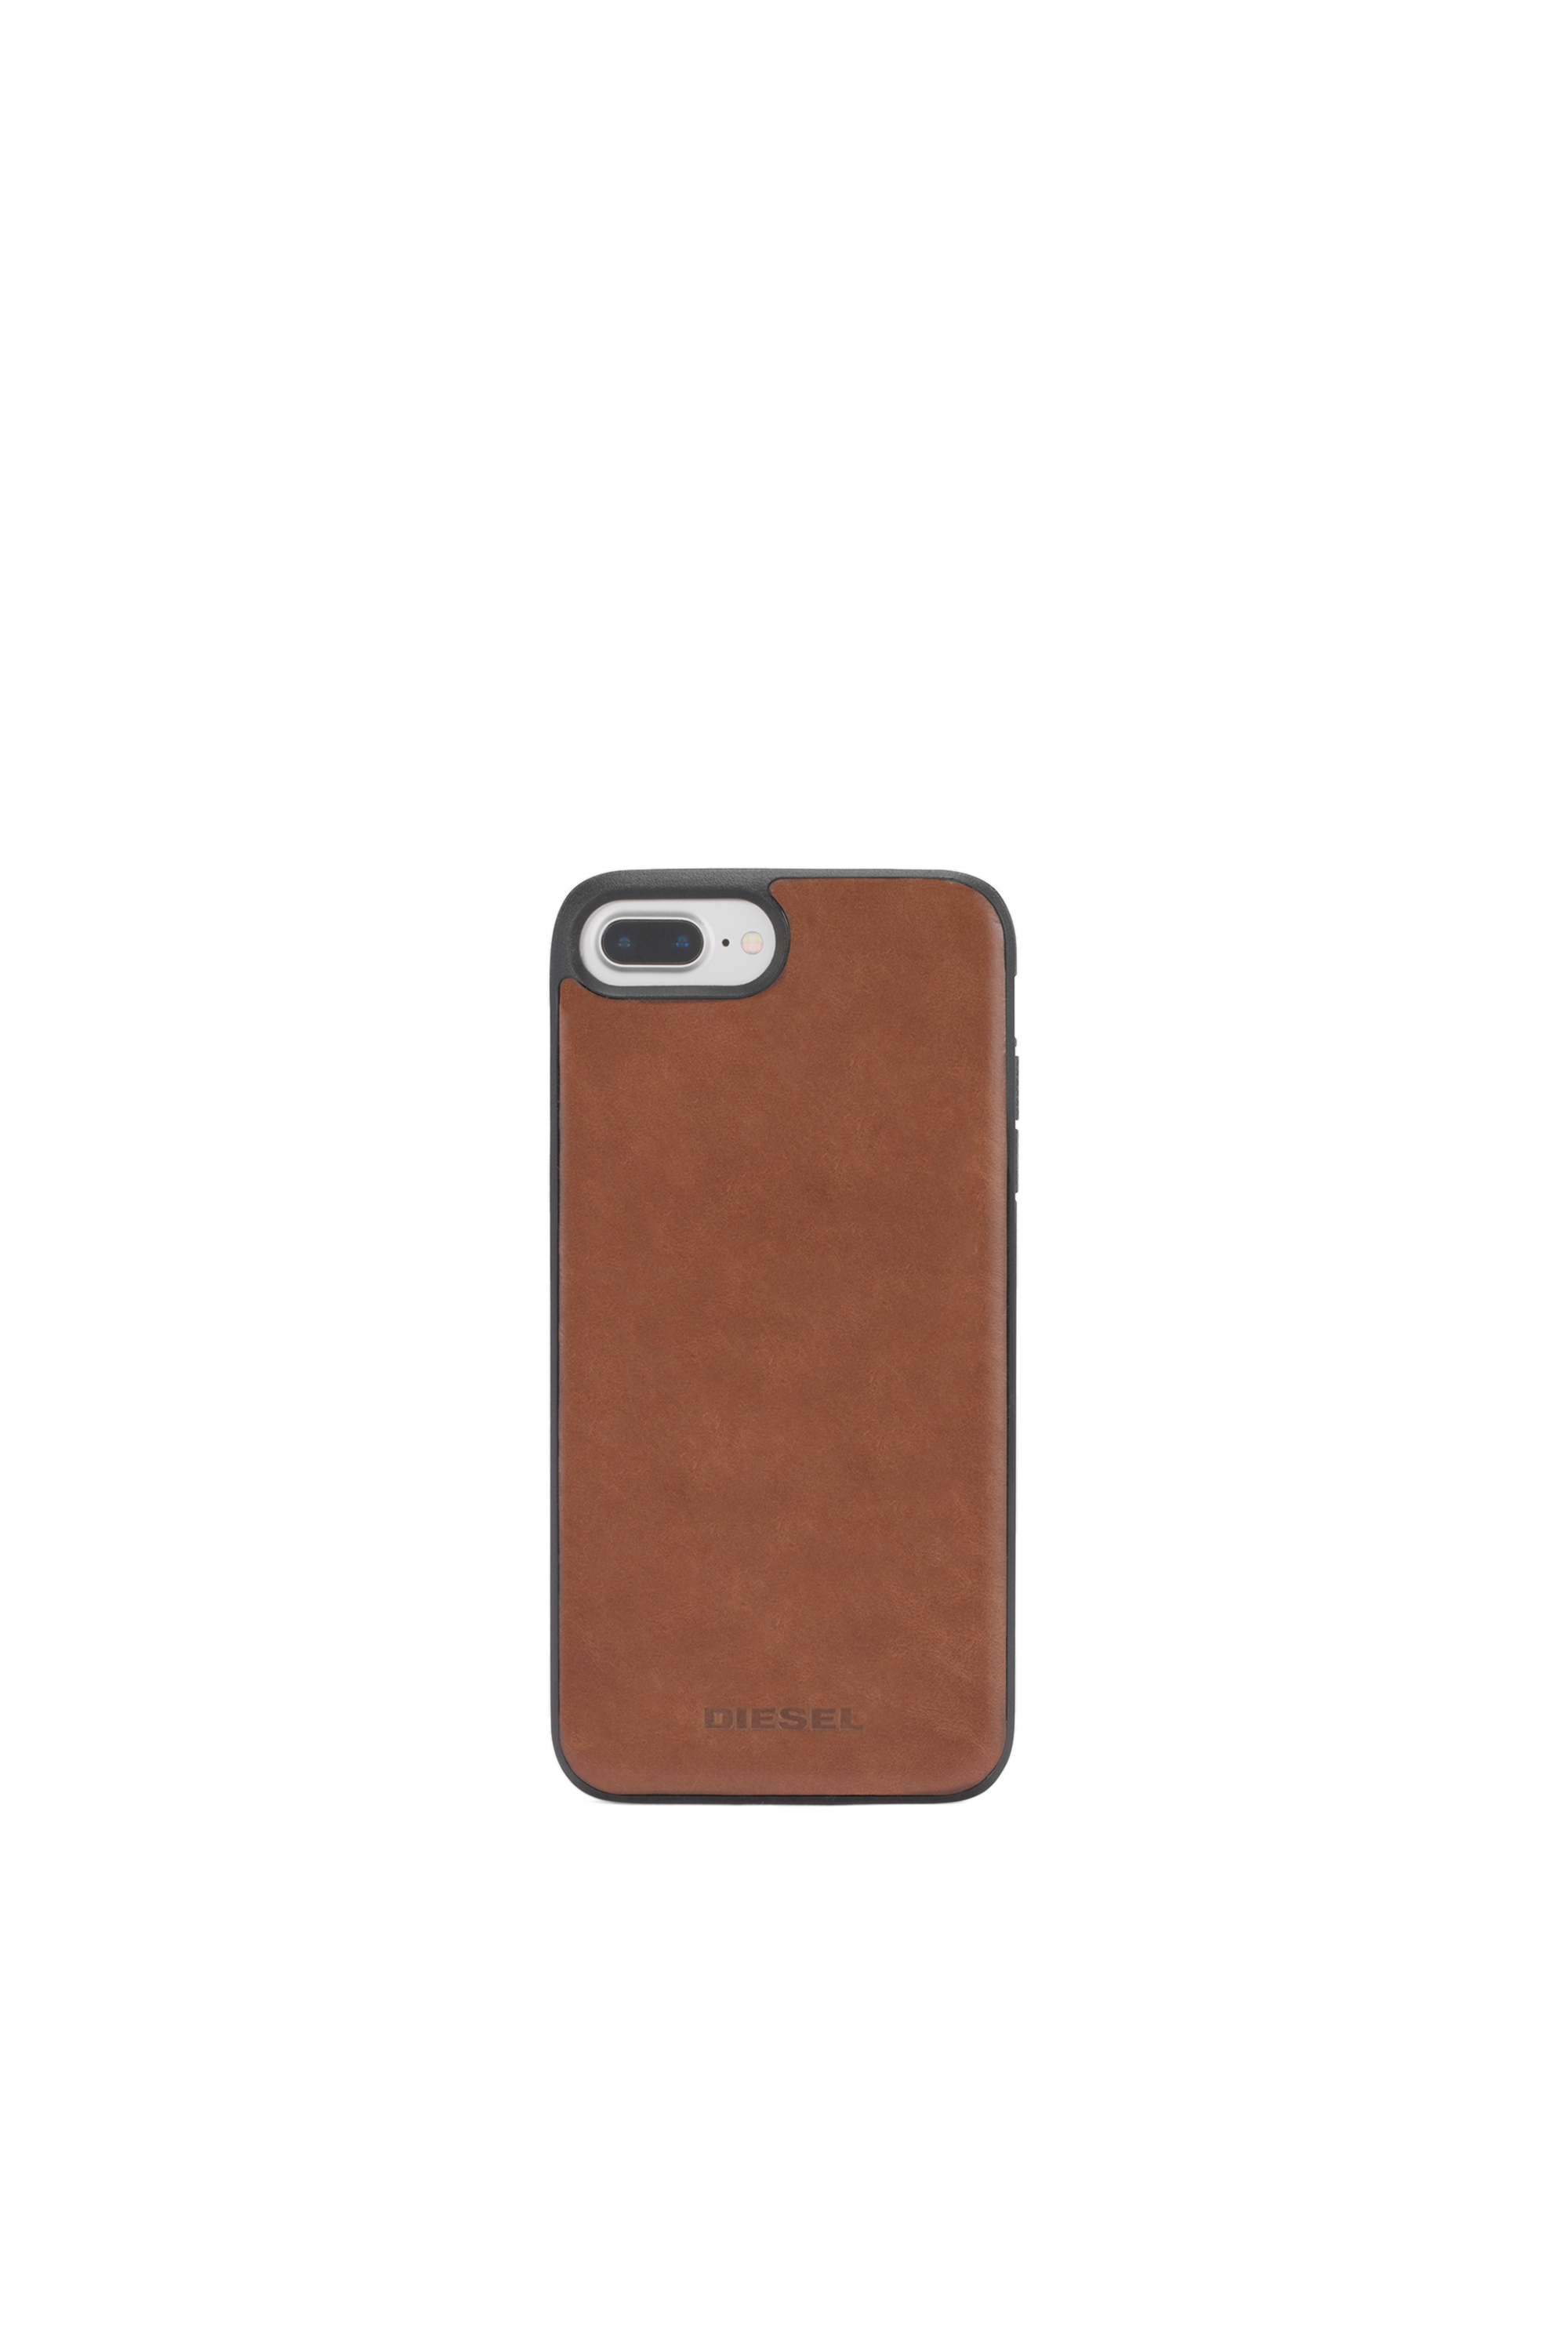 Diesel - BROWN LEATHER IPHONE X CASE,  - Cases - Image 4